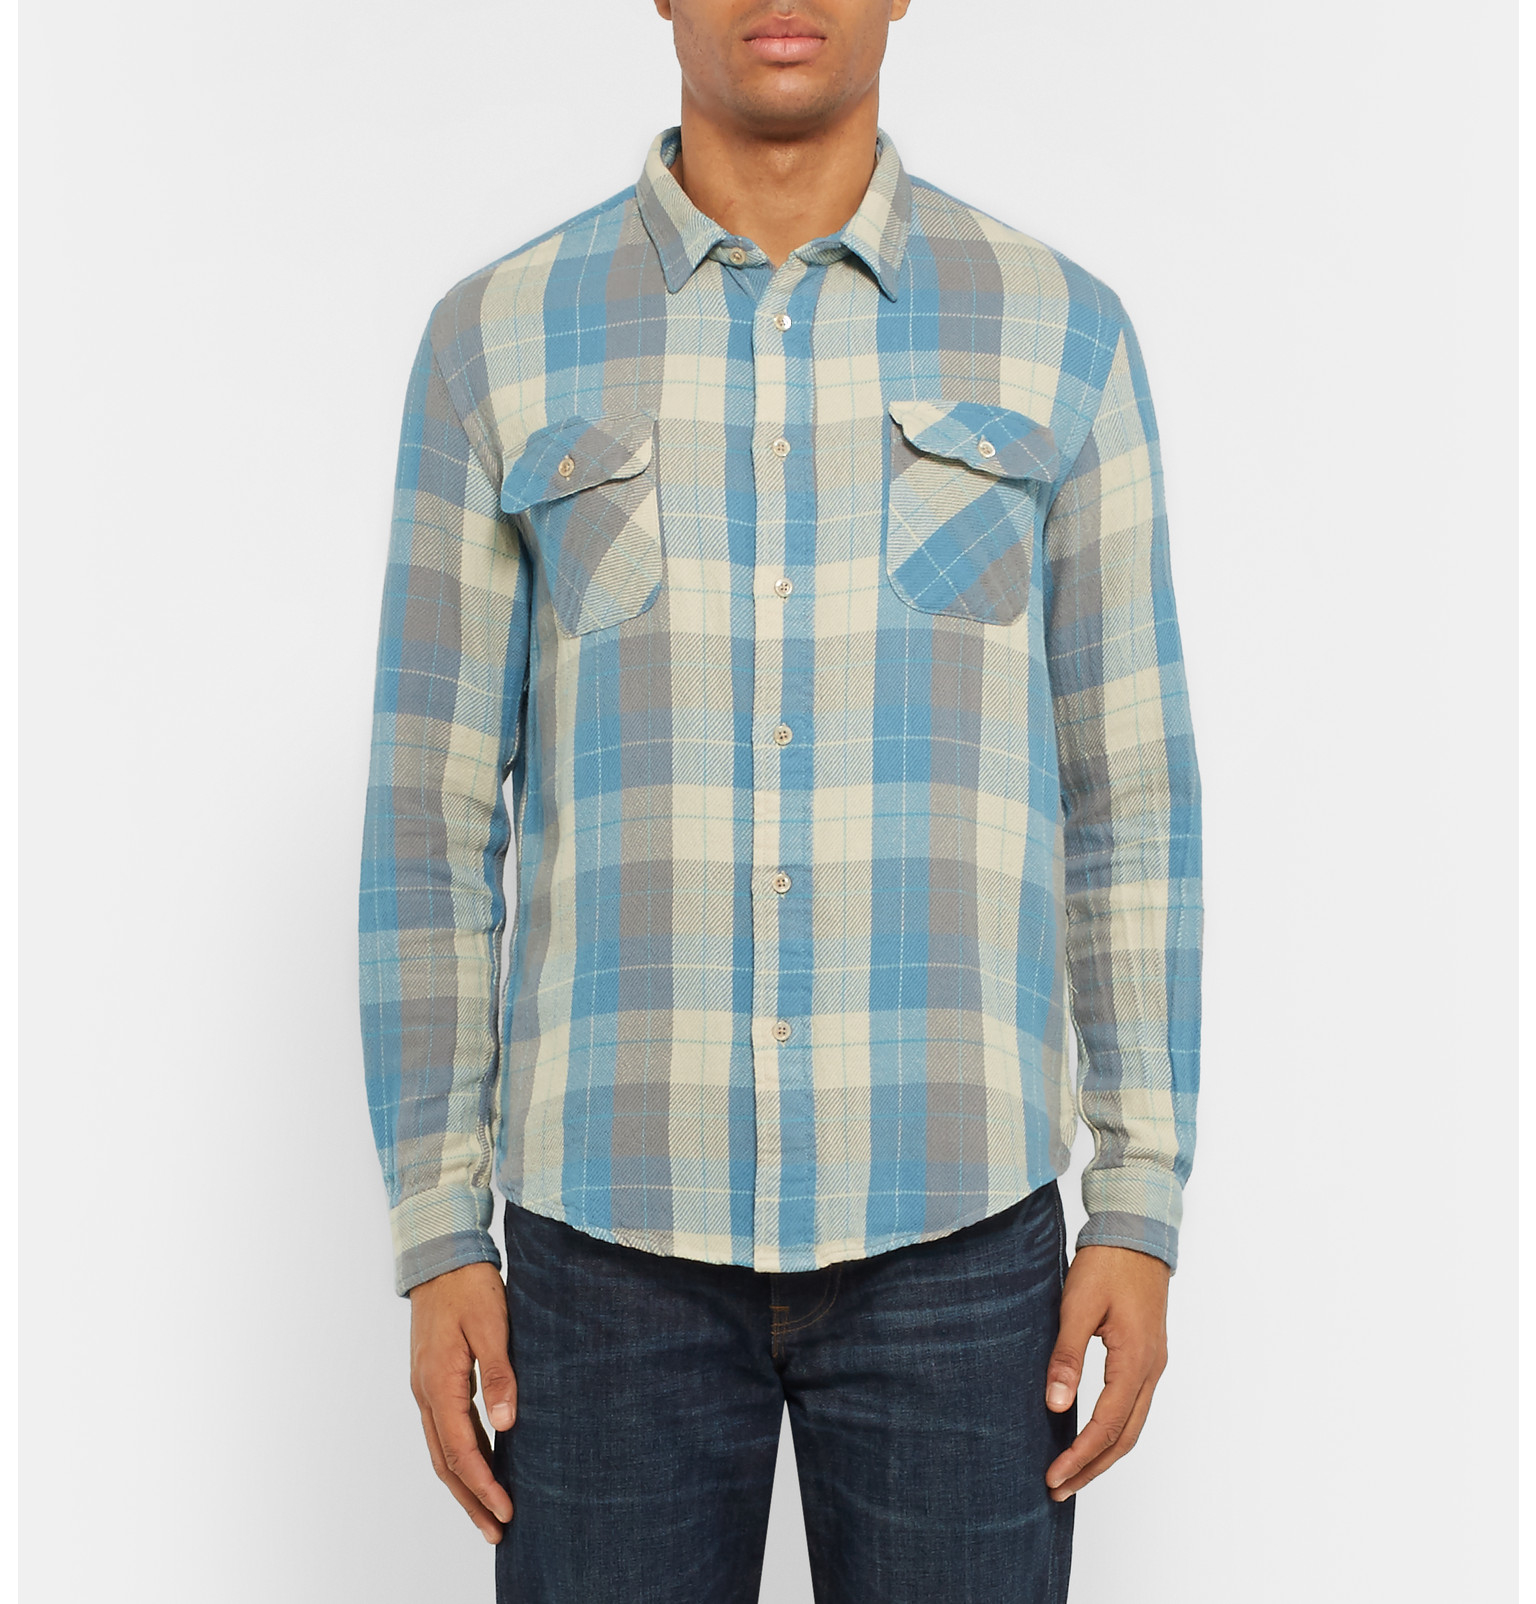 Levi 39 s 1950s slim fit plaid cotton shirt in blue for men for Levis vintage denim shirt 1950 sawtooth slim fit